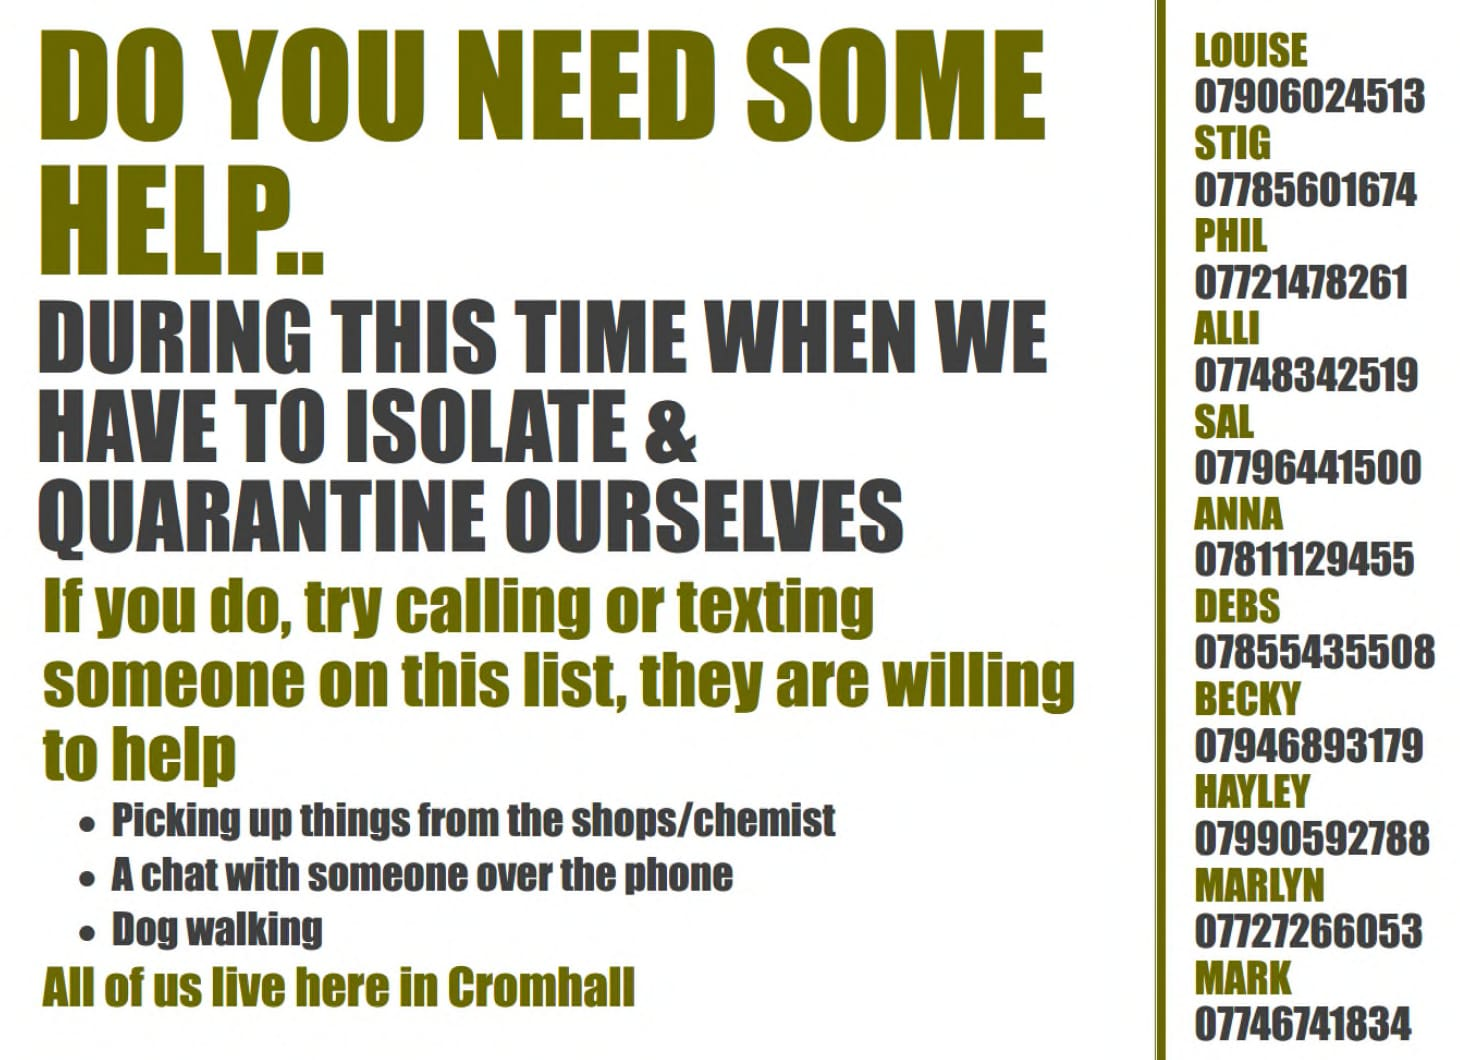 Information on help available in Cromhalll during Covid-19